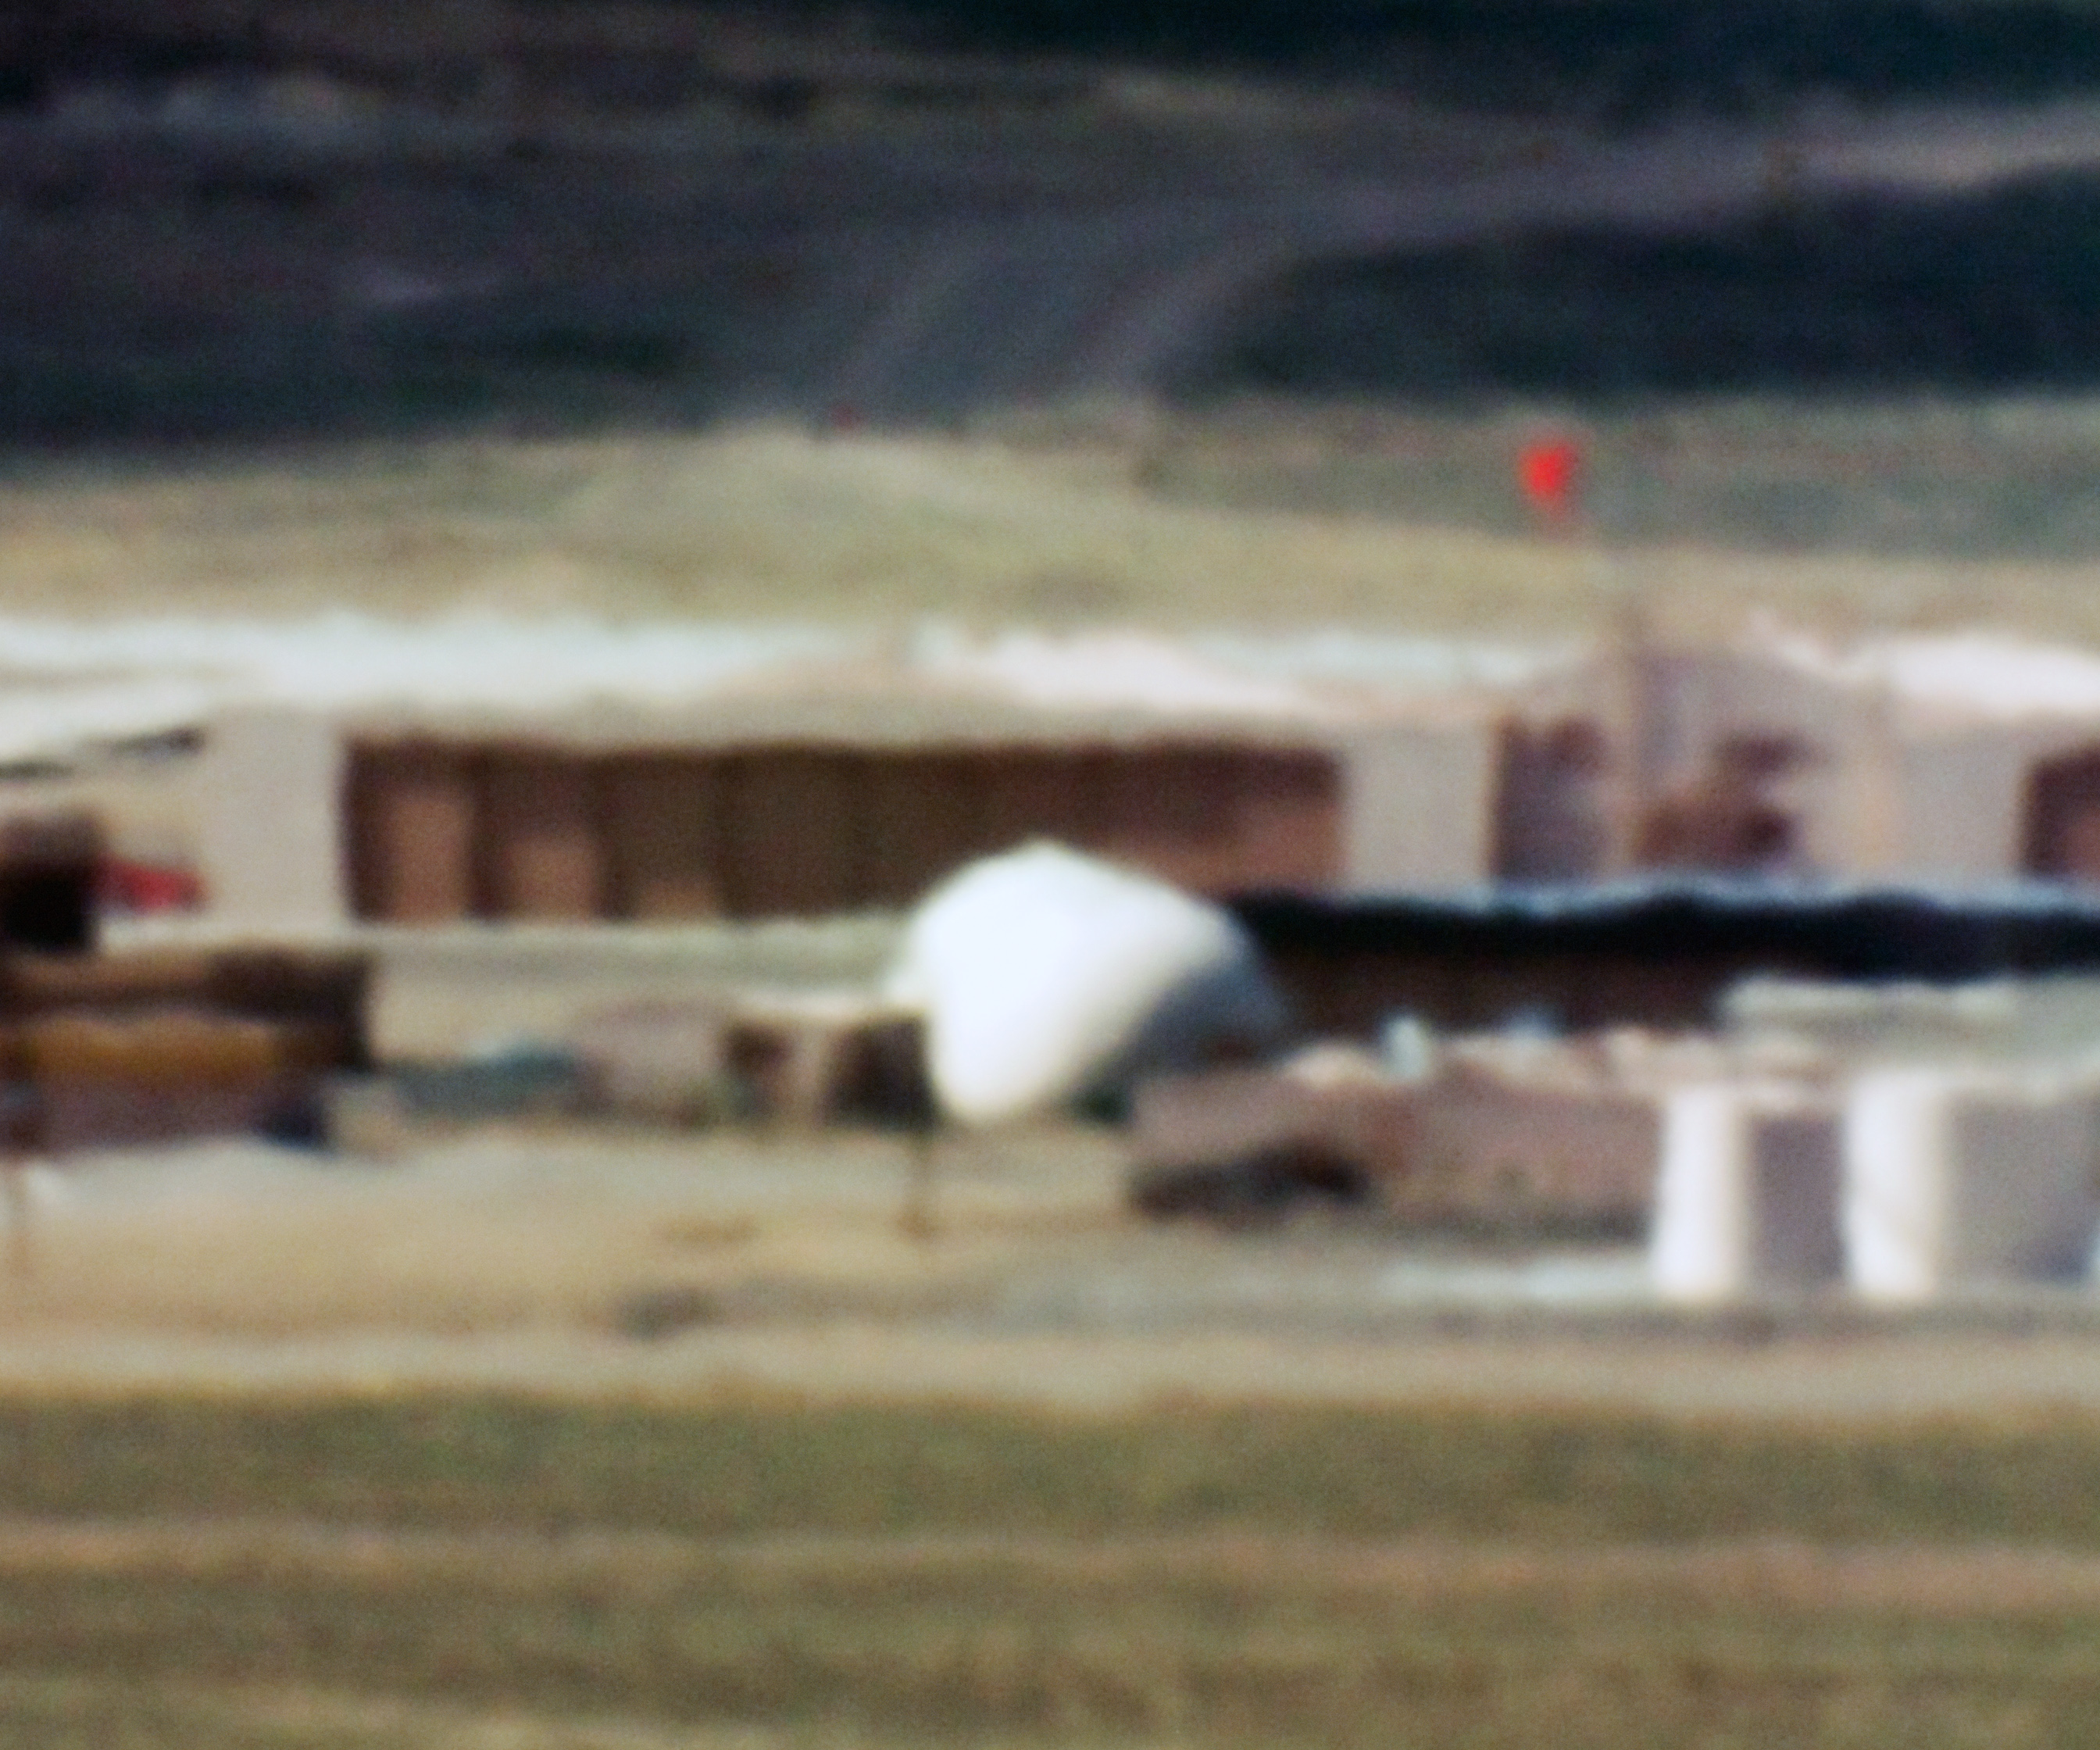 Large Hangars and Fuel Storage; Tonopah Test Range, NV; Distance approx. 18 miles; 10:44 am, 2005